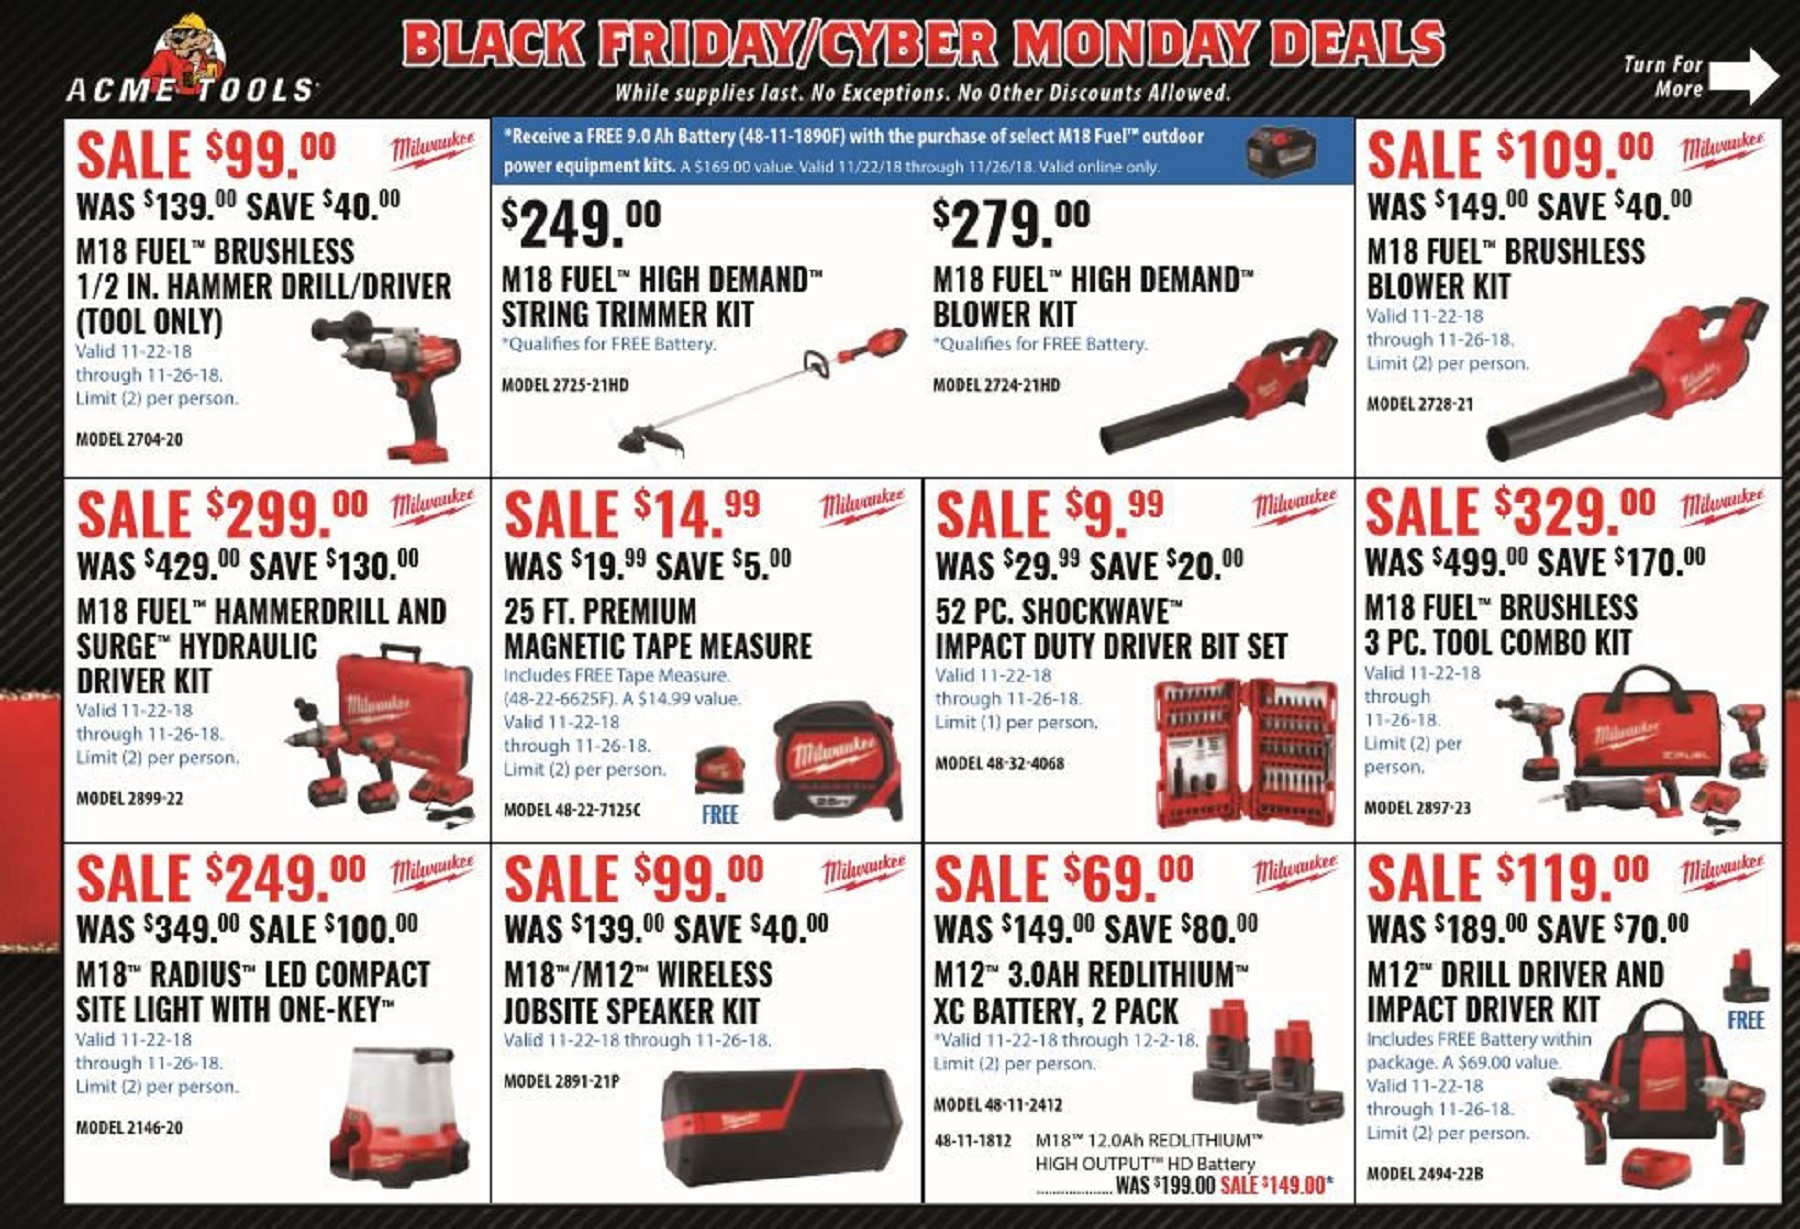 Ah Black Friday Hot Deal Acme Tools Black Friday 2018 Ad Scan With Links Tool